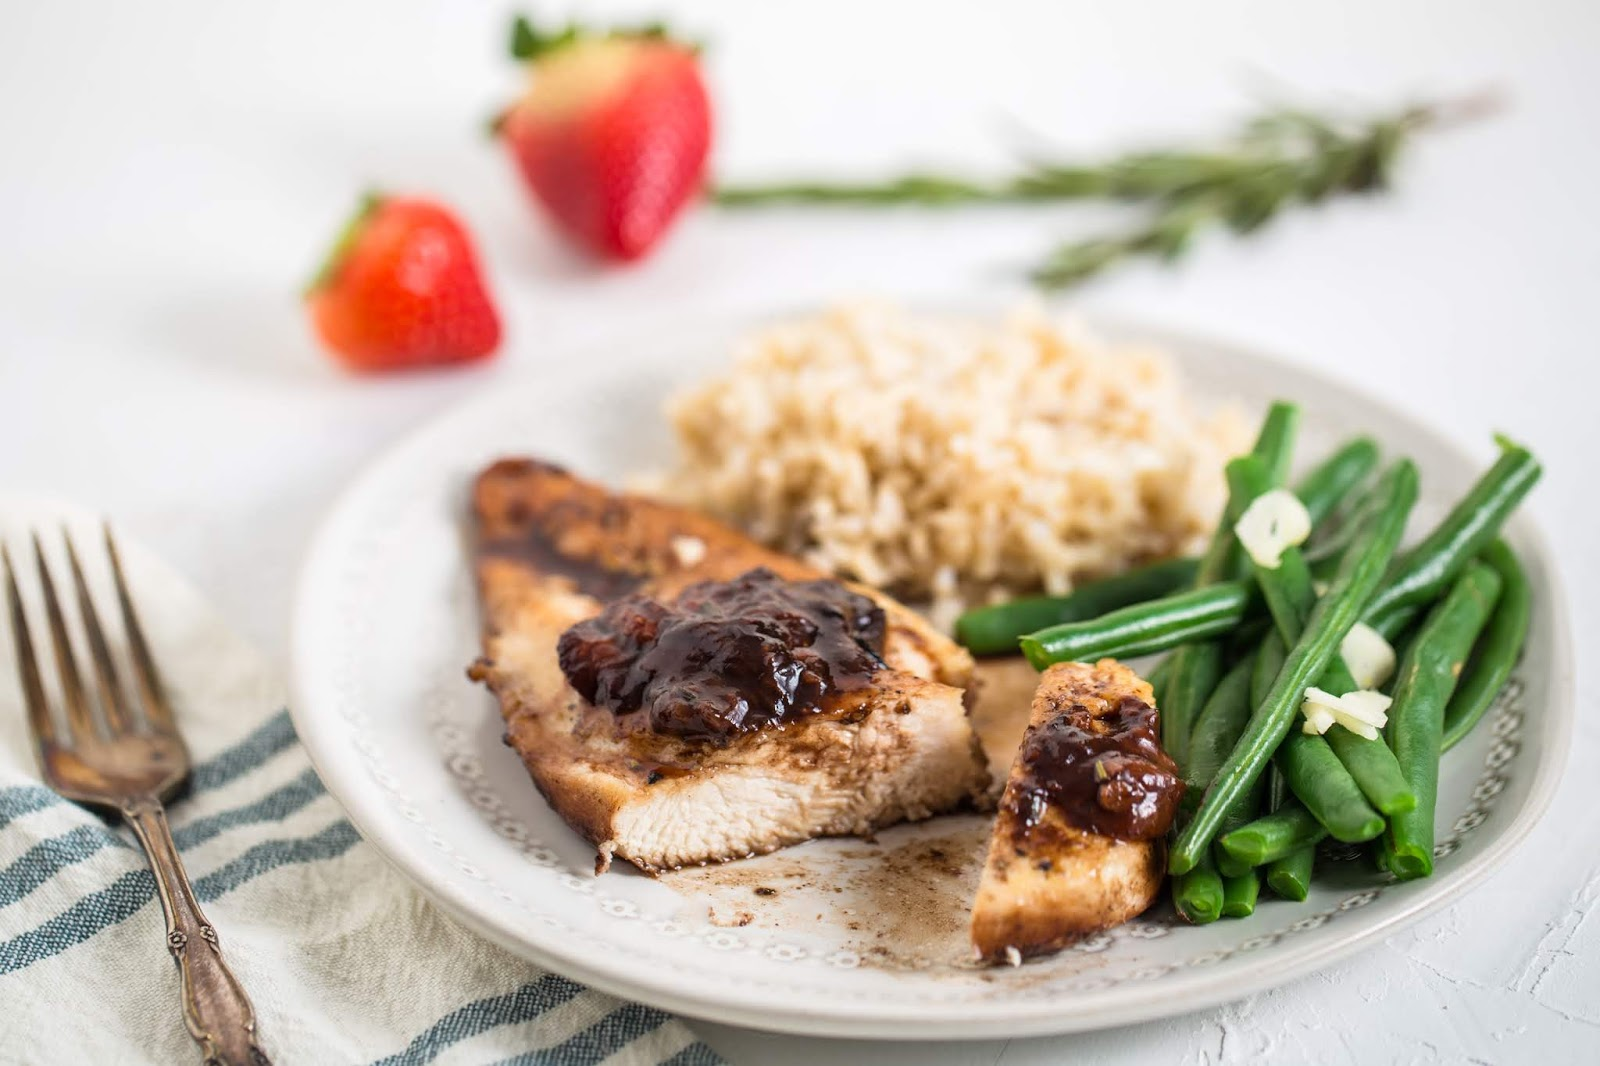 Chicken with Strawberry-Balsamic Sauce is the perfect blending of sweet and savory. It's simple enough for a family meal, yet elegant enough to serve guests. Oh, and that sauce is life!